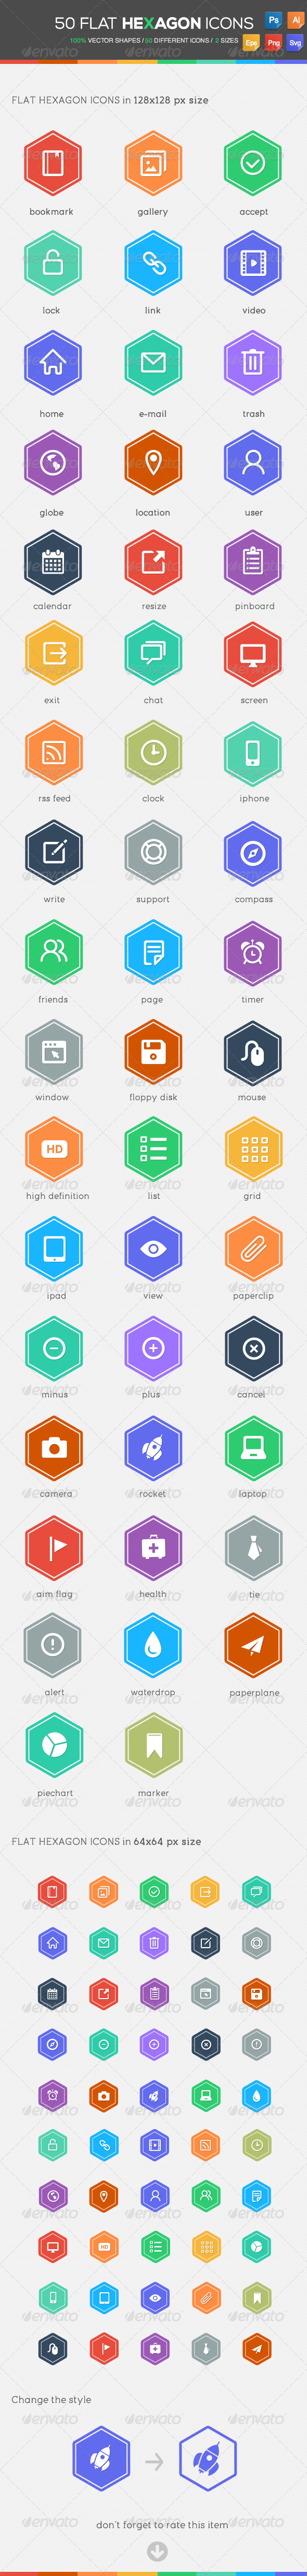 50 Flat Hexagon Icons - Icons